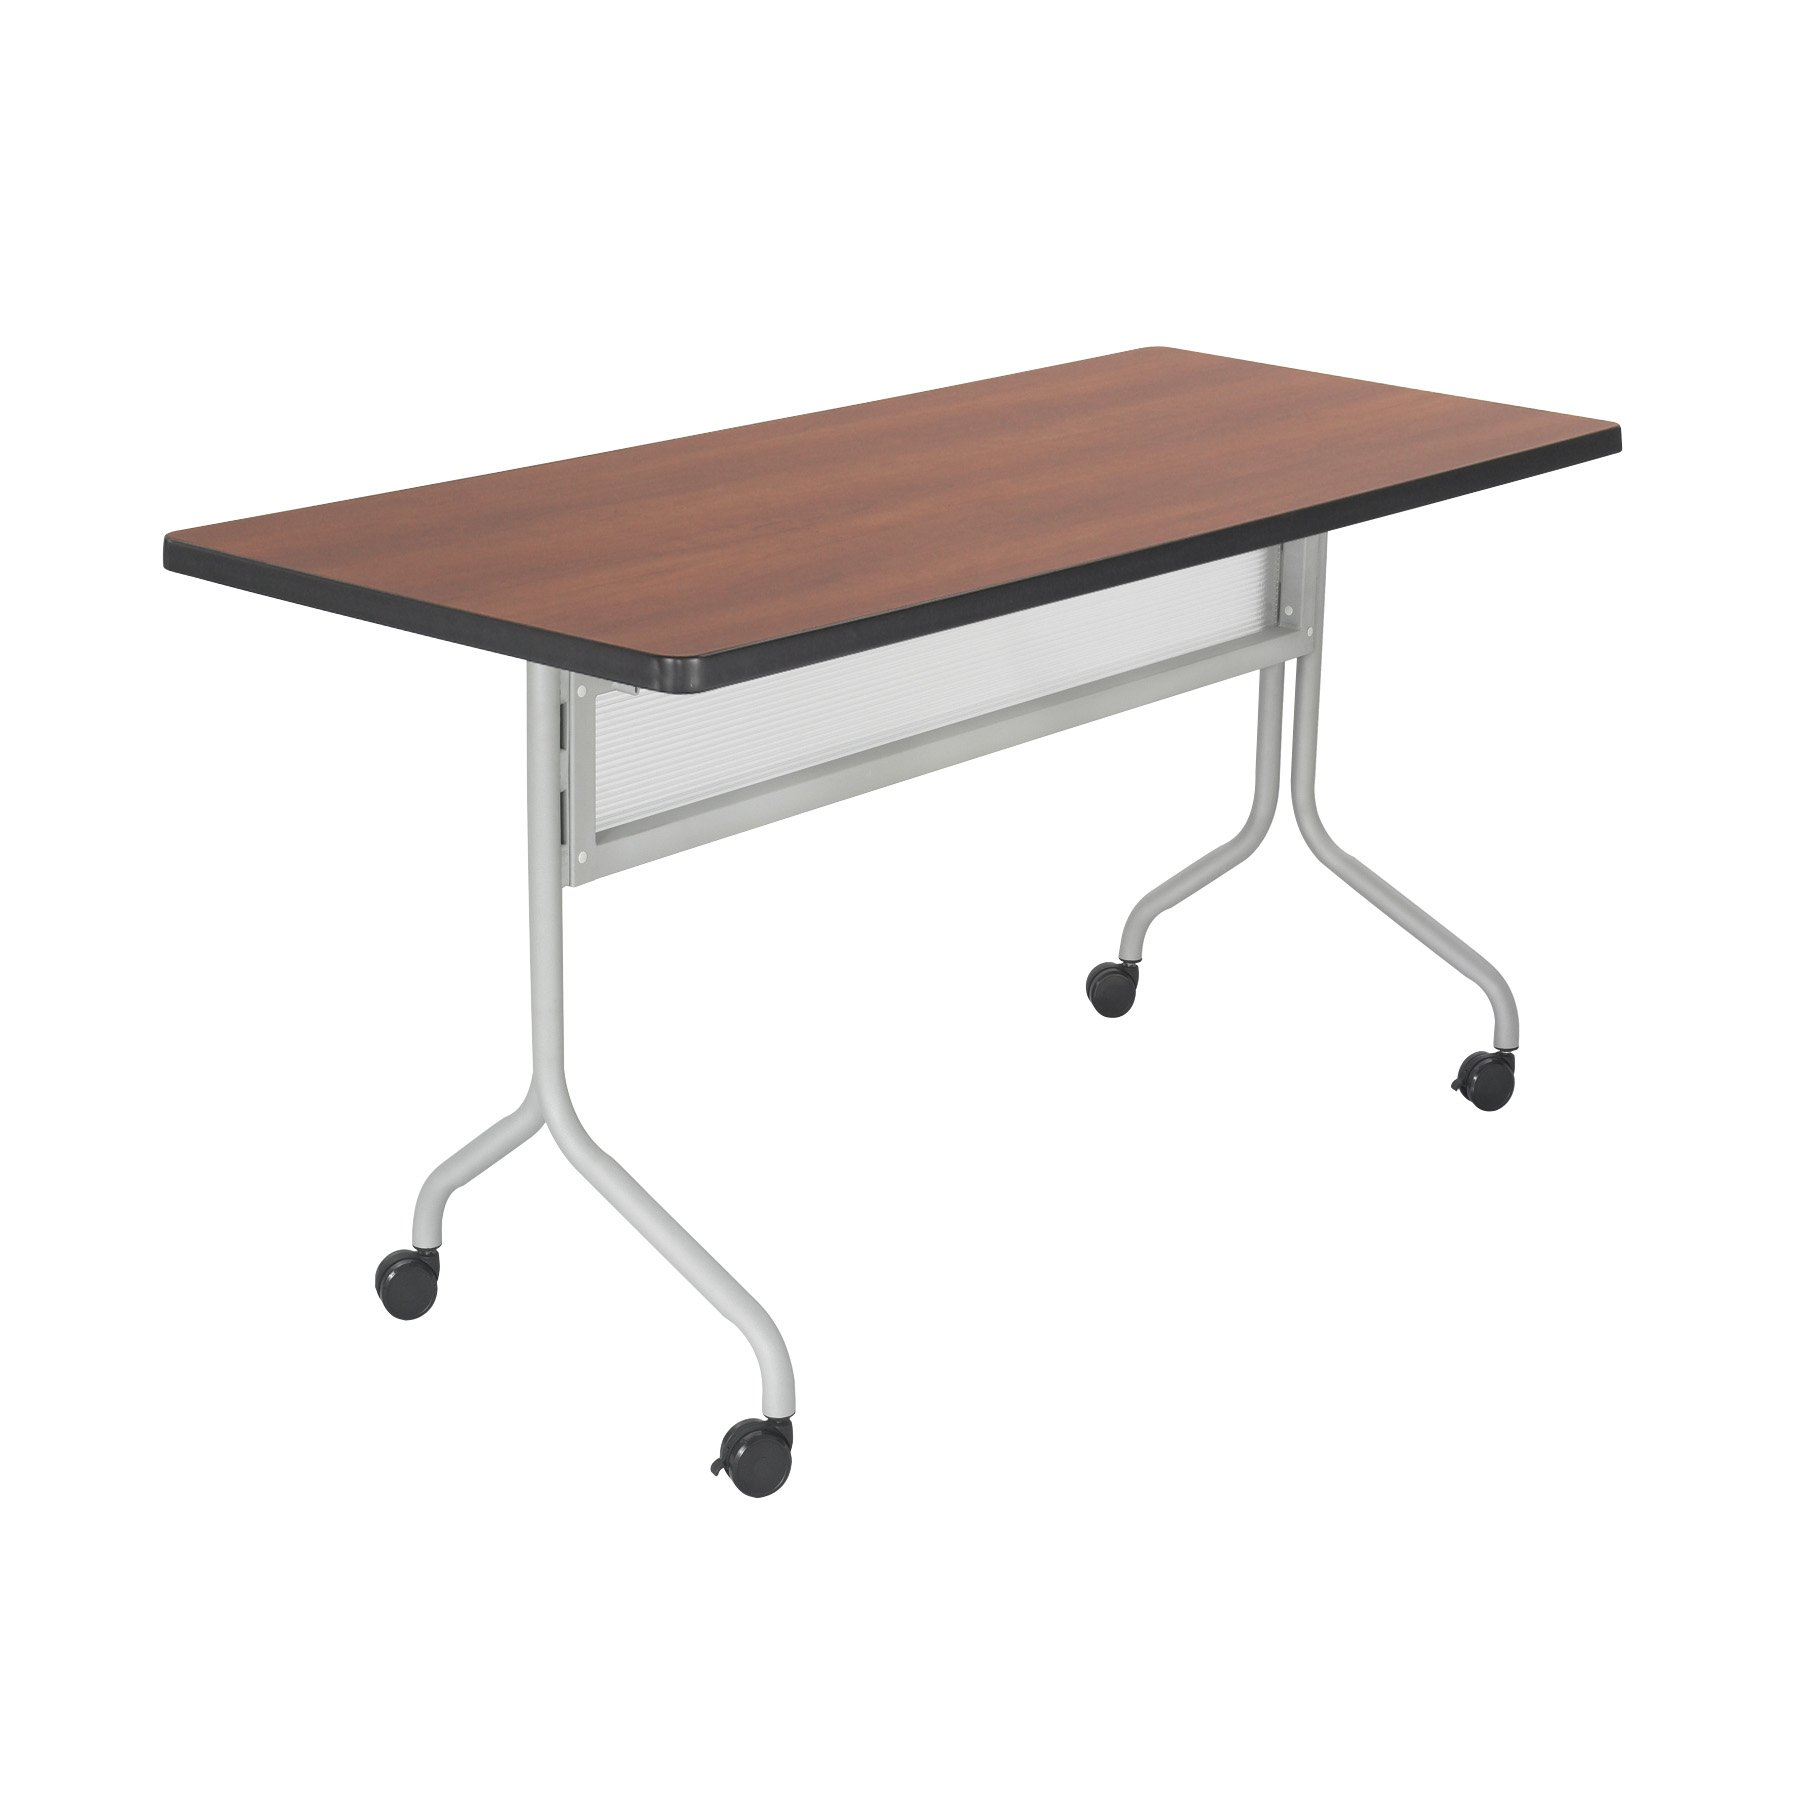 Safco Products 2072CYSL Impromptu Rectangle Mobile Training Table, 72''W x 24''D, Cherry Top/Silver Base